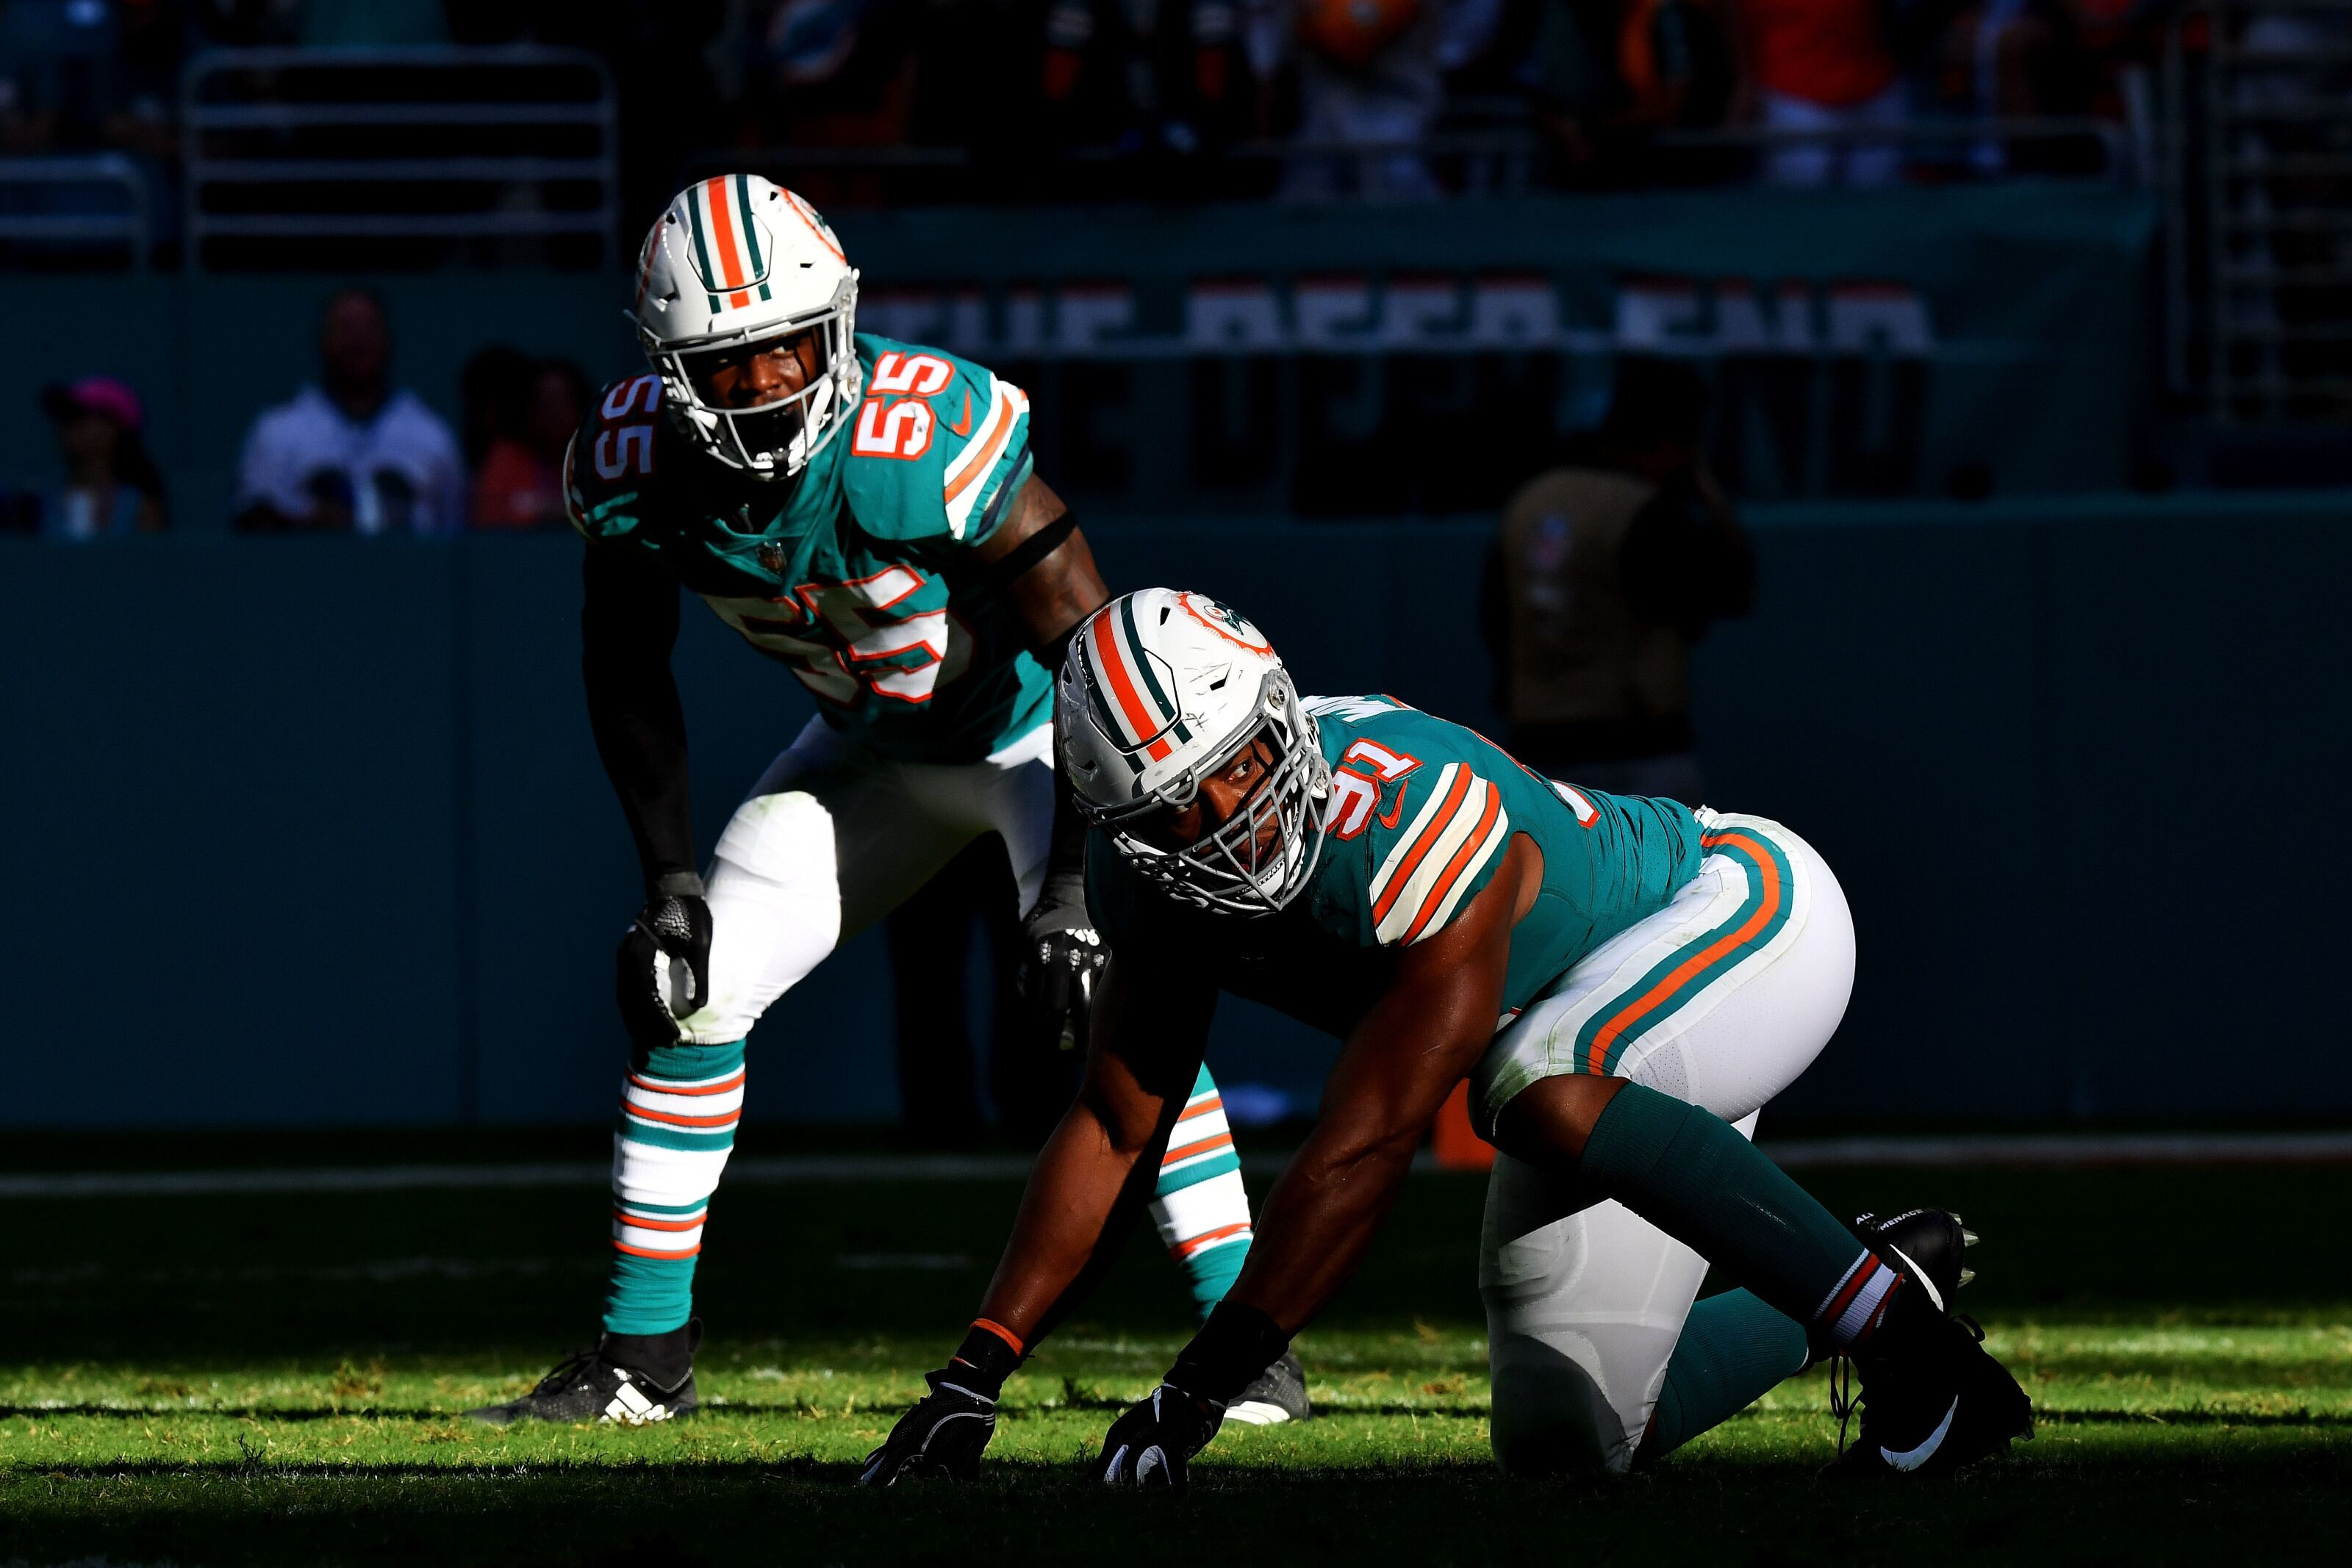 Miami Dolphins appear to have found their defensive leader